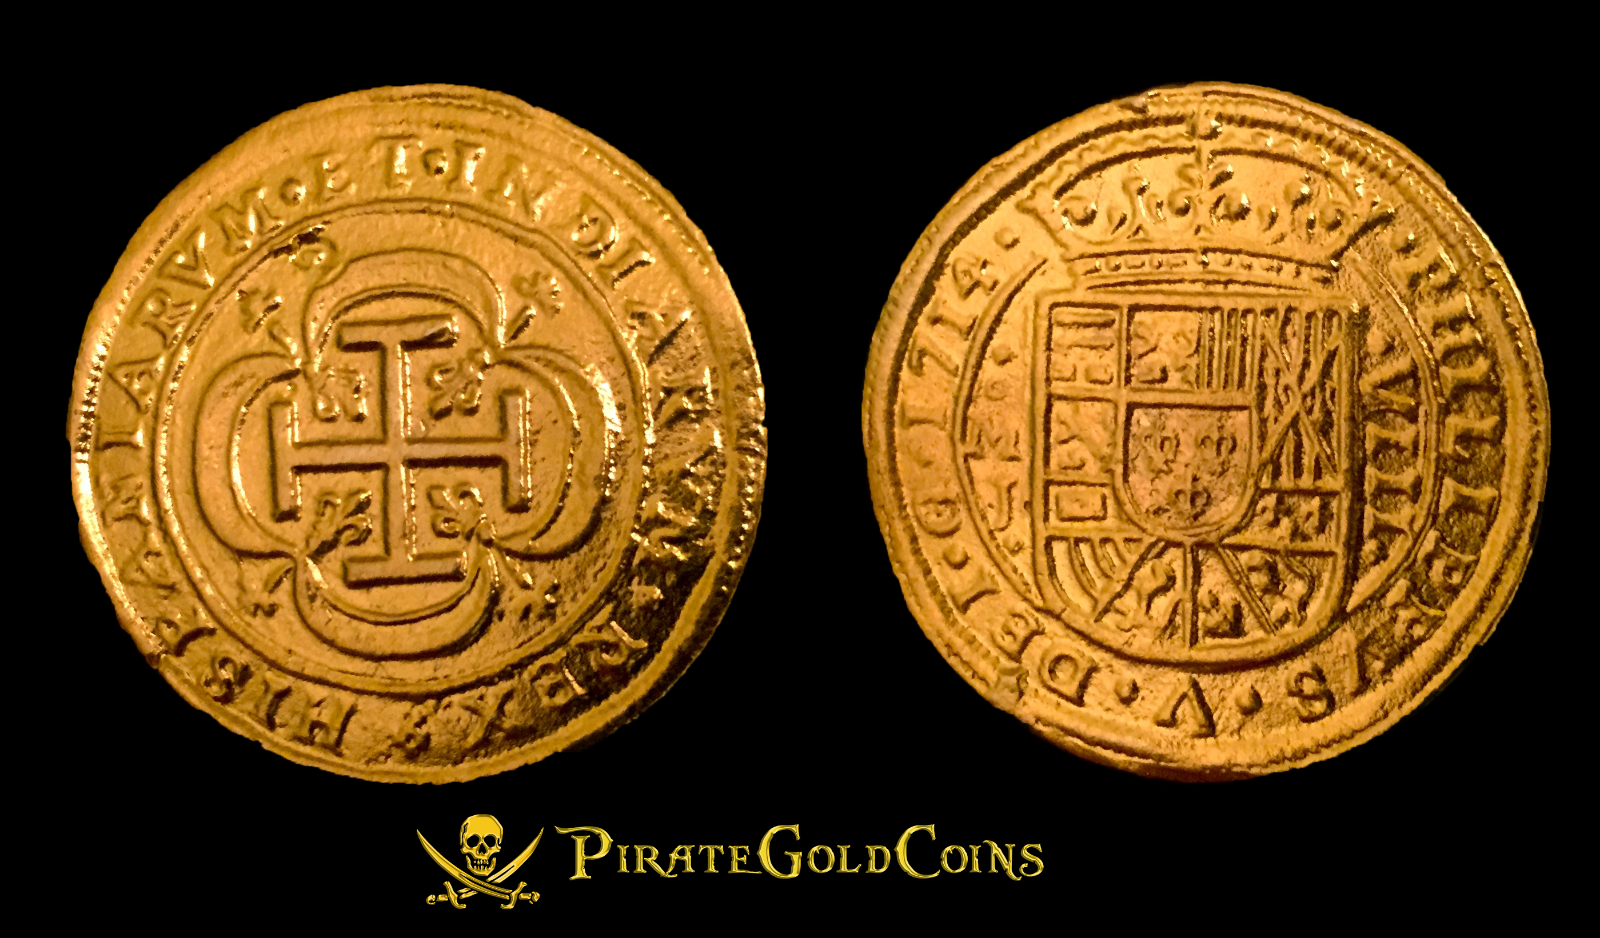 All information about Real Pirate Gold Doubloon Coin - #catfactsblog